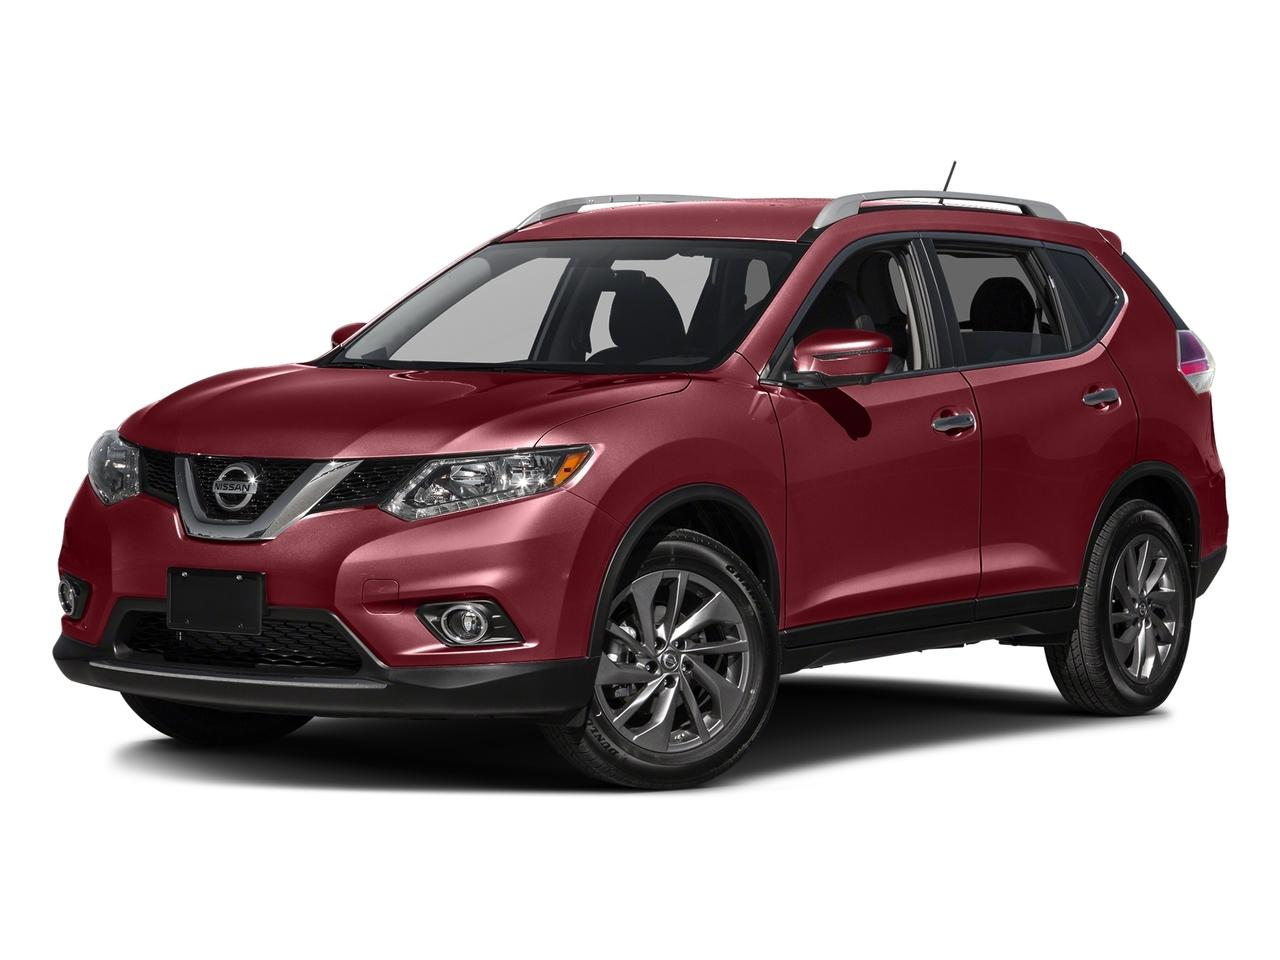 2016 Nissan Rogue Vehicle Photo in Tulsa, OK 74133